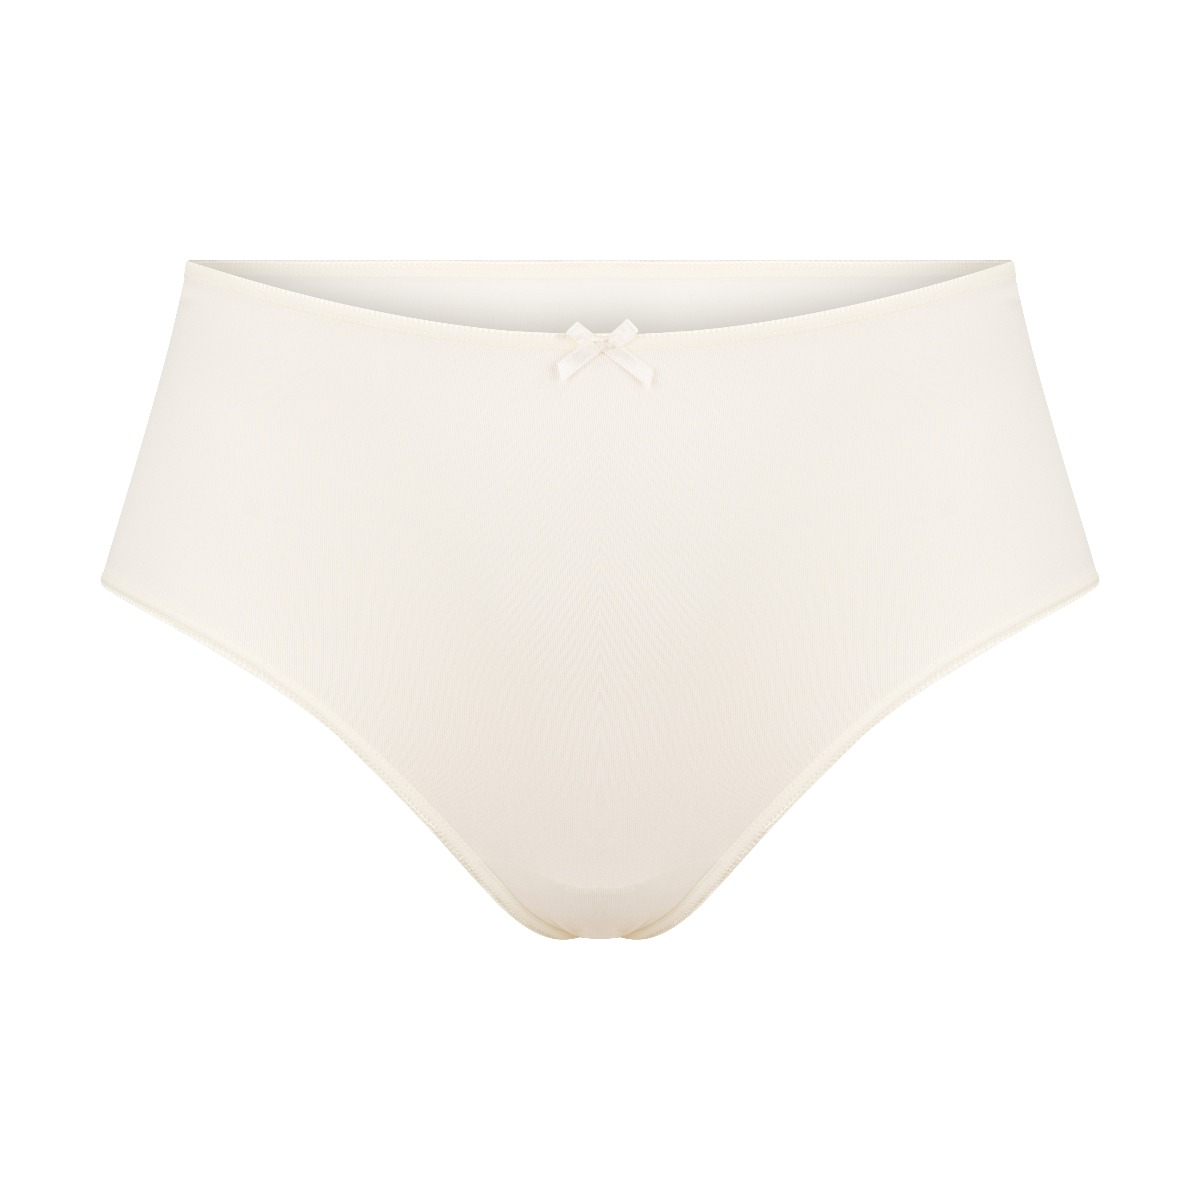 RJ Pure Color Dames String Extra Hoog Ivoor XL